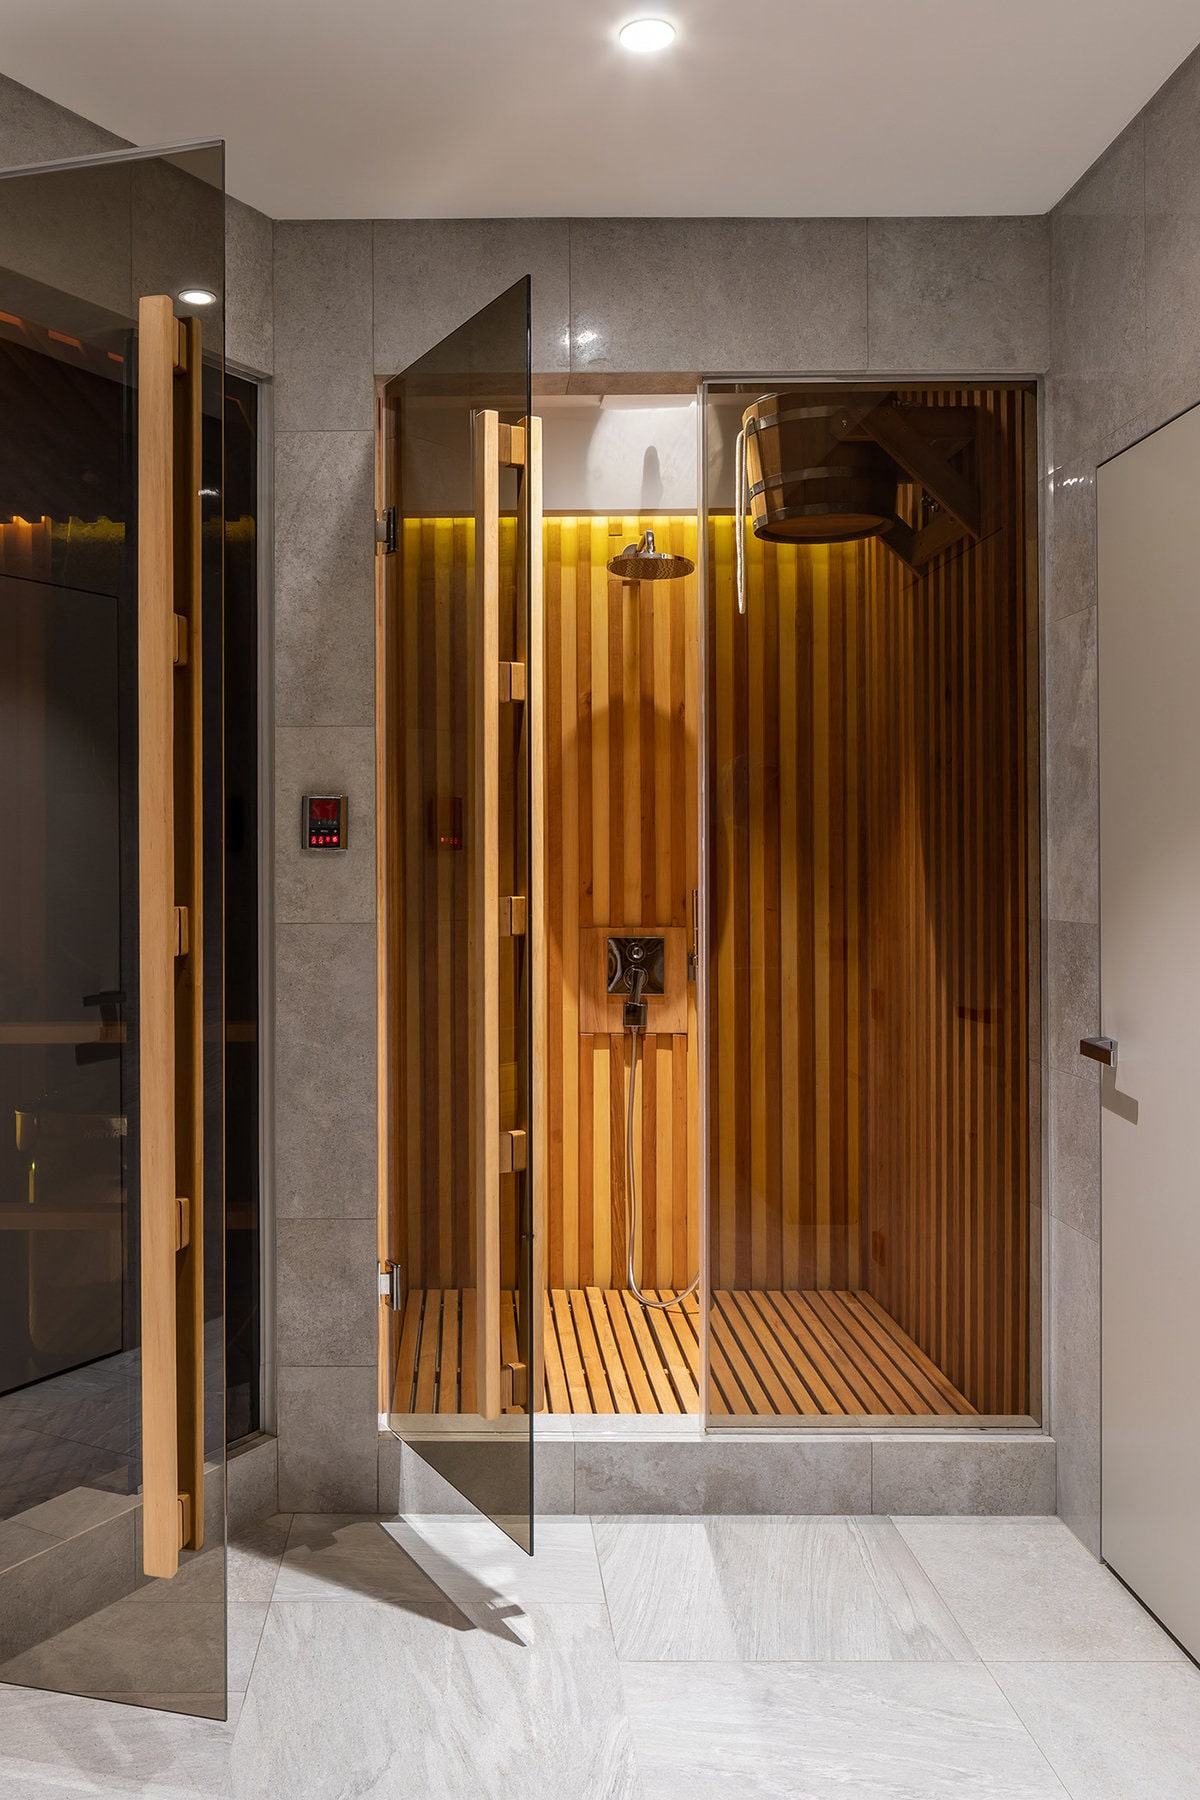 This house also has a shower area near the pool. This has lovely glass doors and wooden sauna-type walls inside to match its flooring.